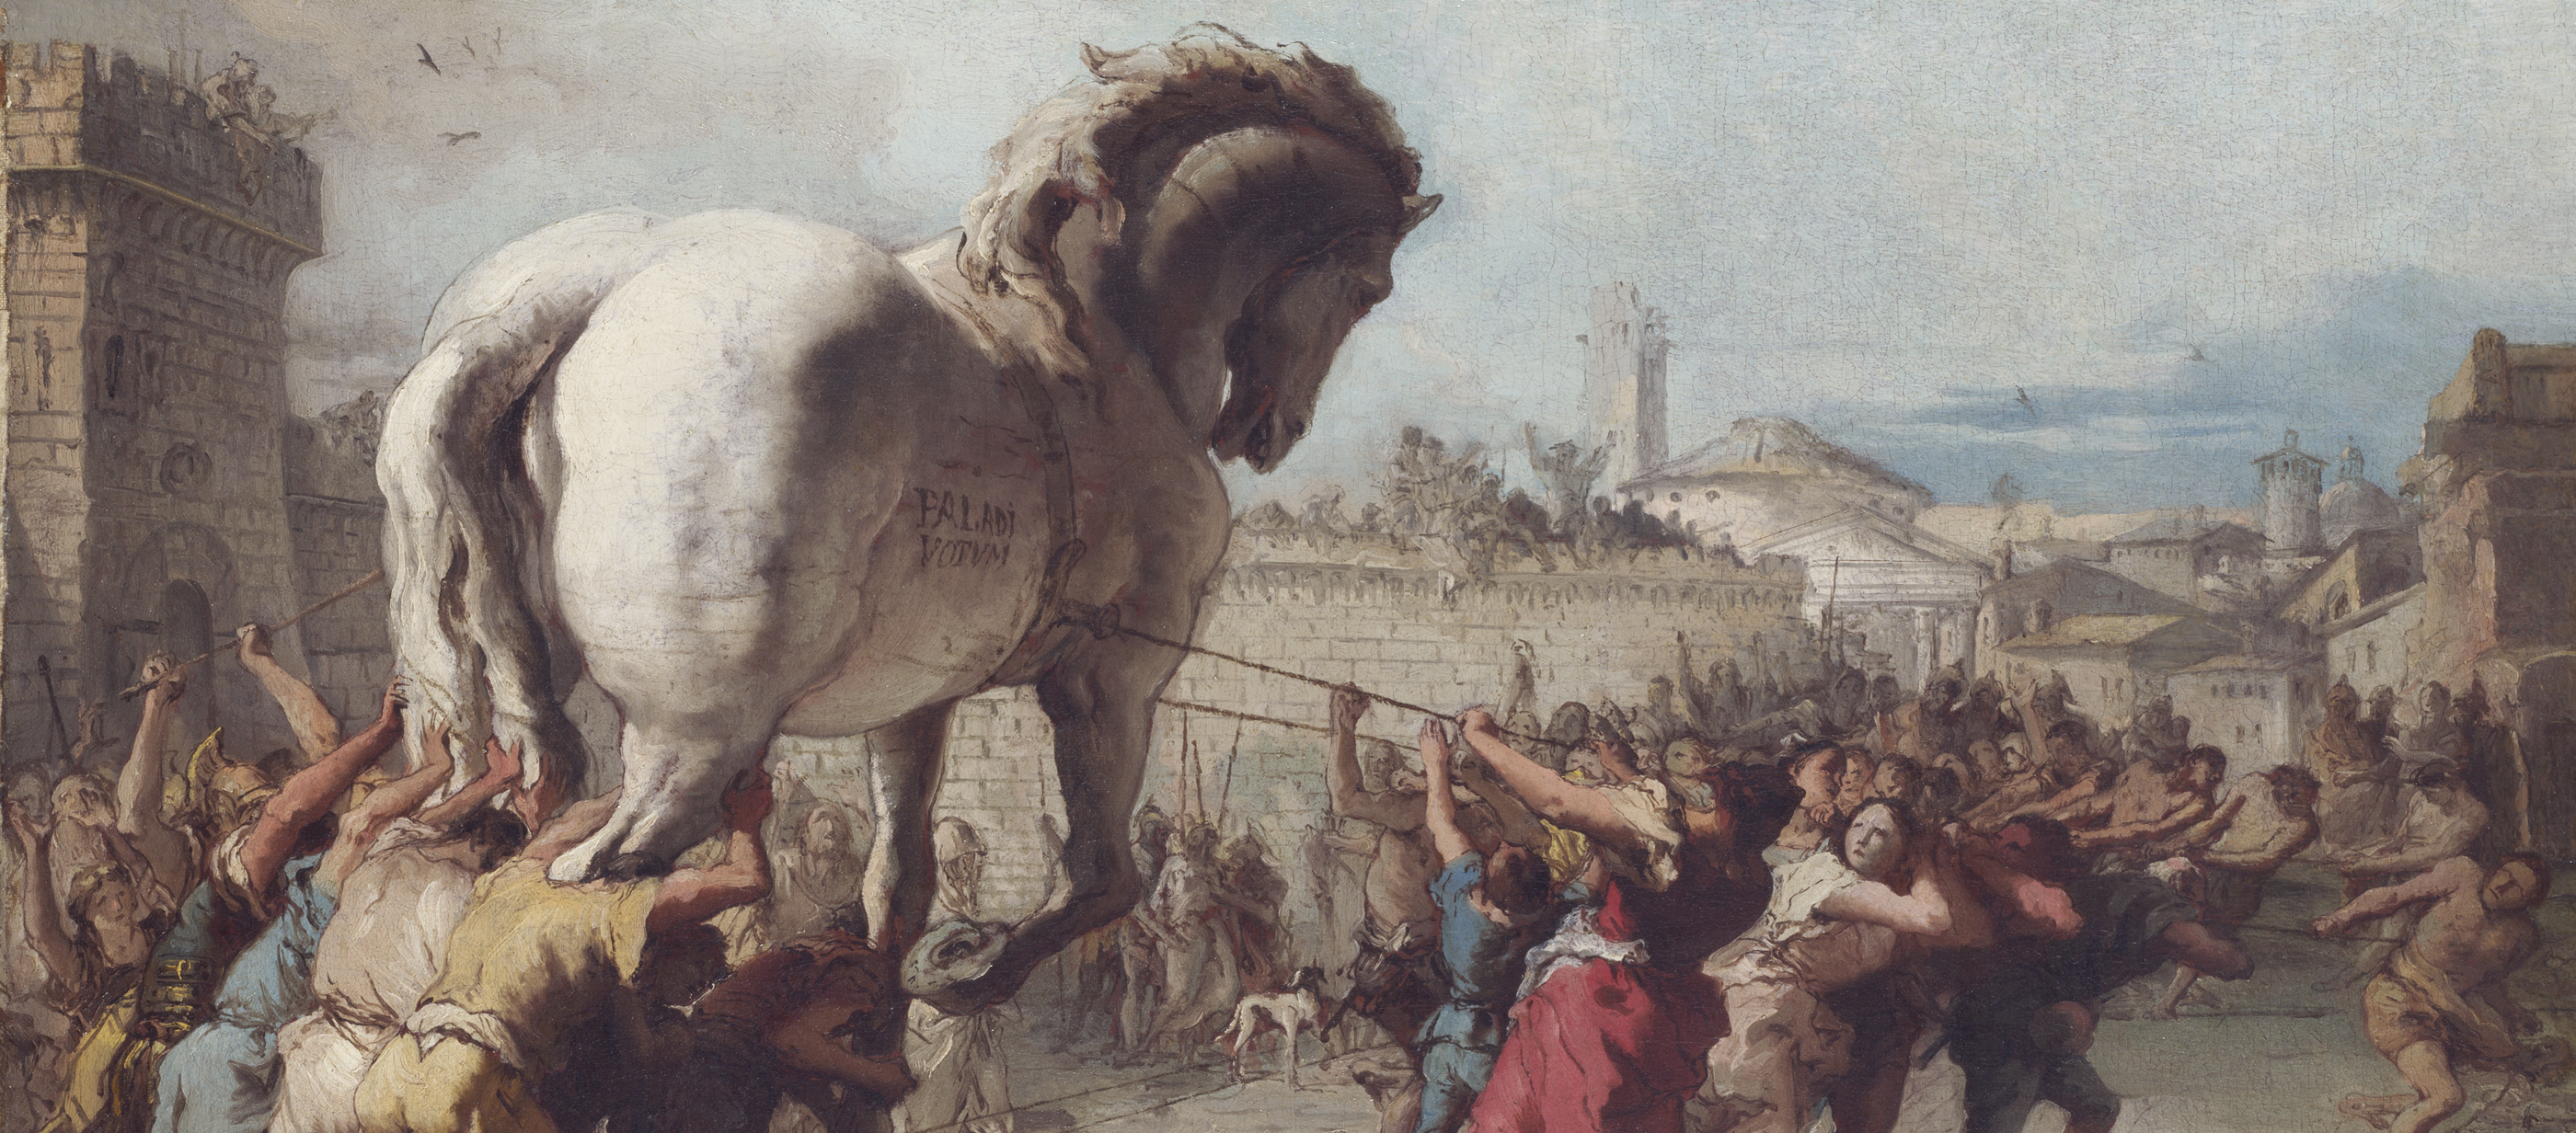 The Procession of the Trojan Horse into Troy, by Giovanni Domenico Tiepolo, c. 1760.